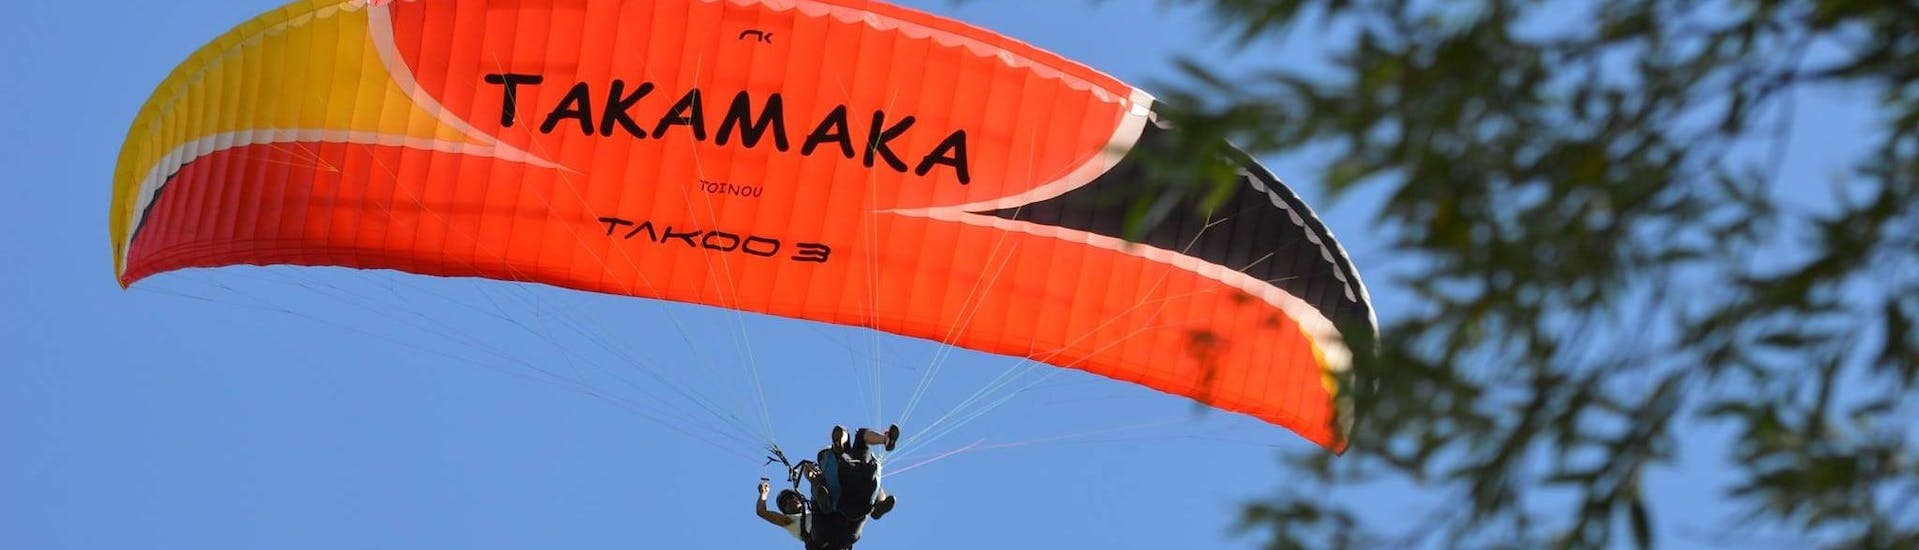 """Paragliding glider in the colors of Takamaka Aix Les Bains like the one used for a Tandem Paragliding """"Adrenaline""""."""